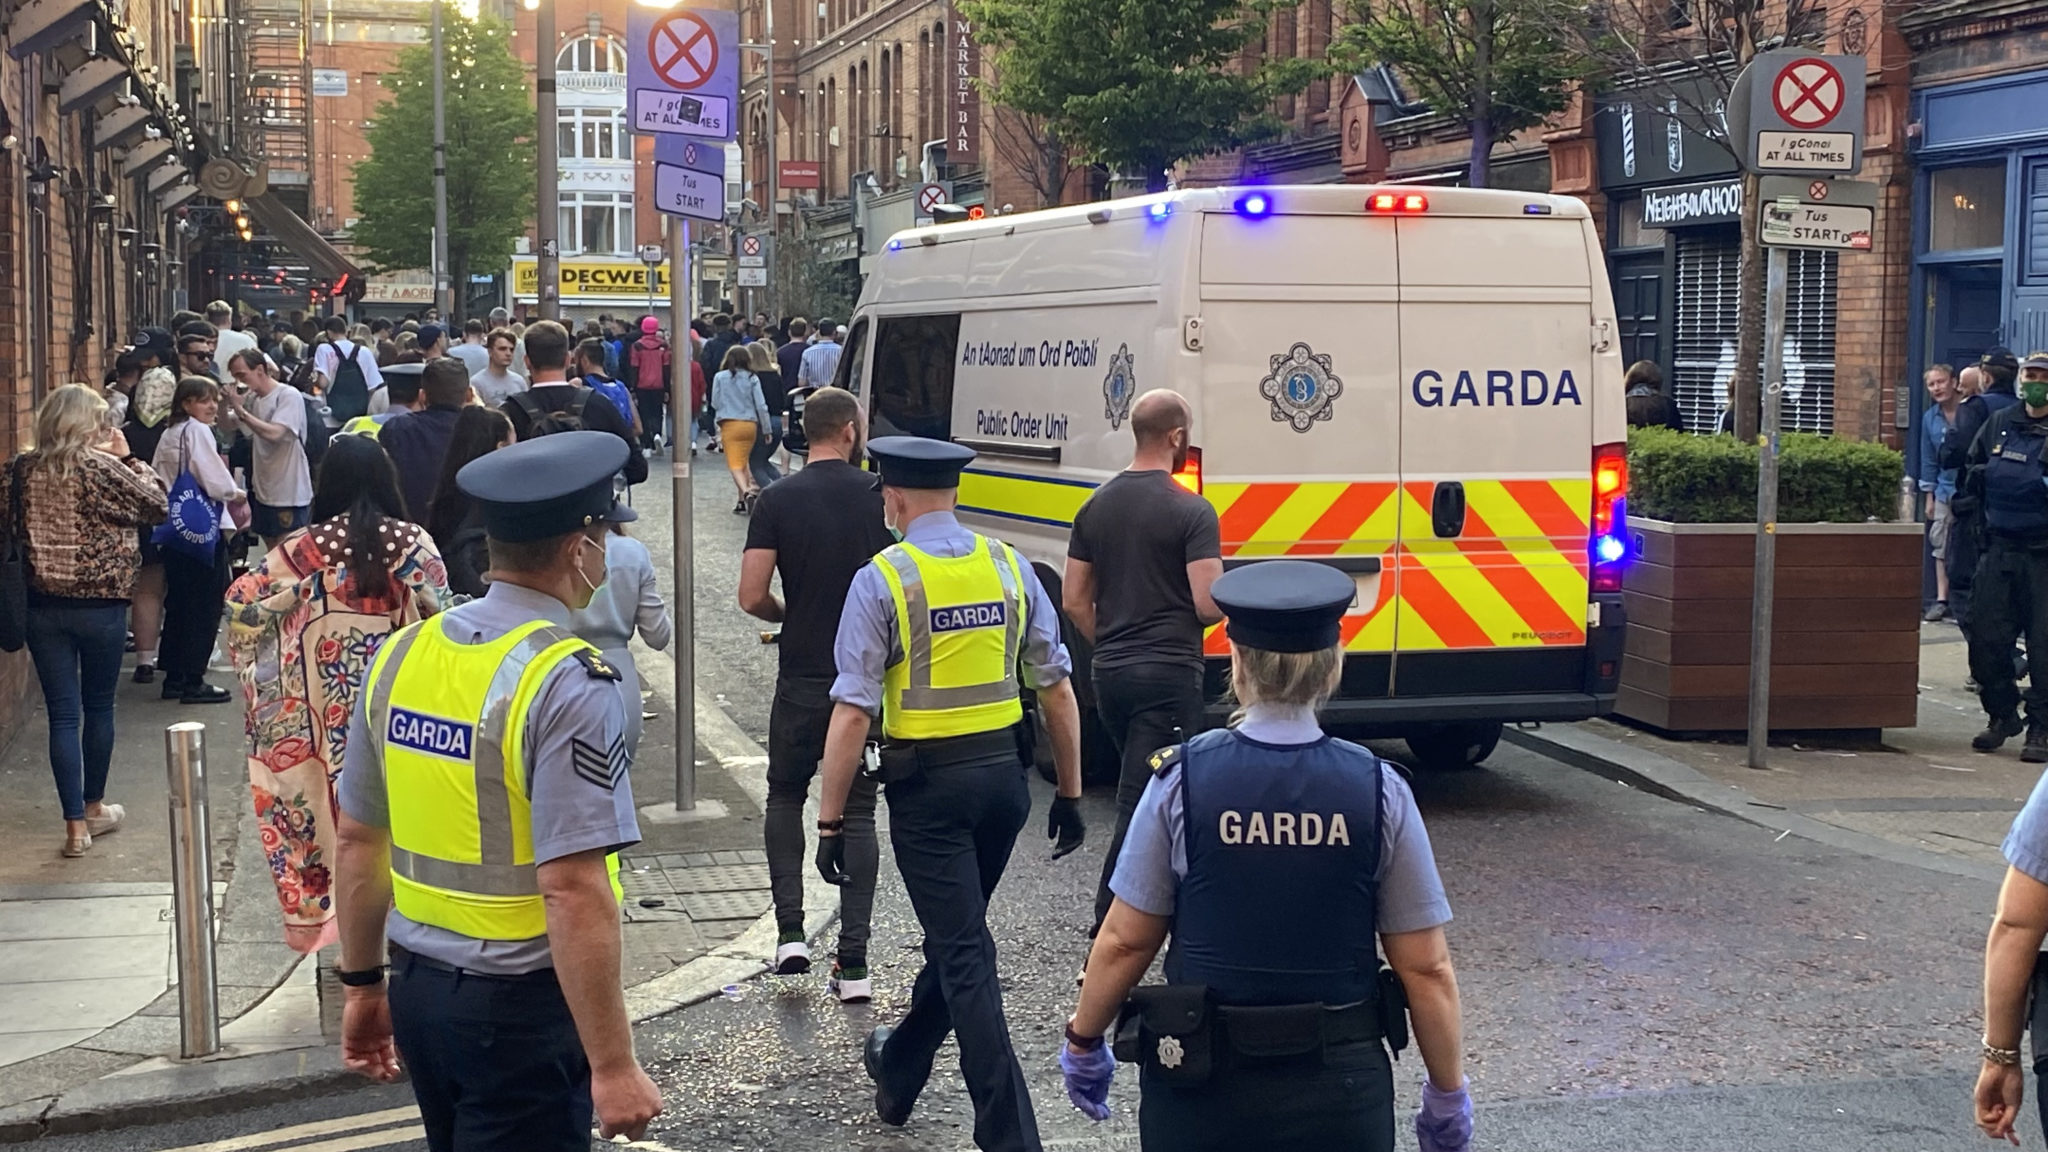 Gardaí move people on from Fade street in Dublin